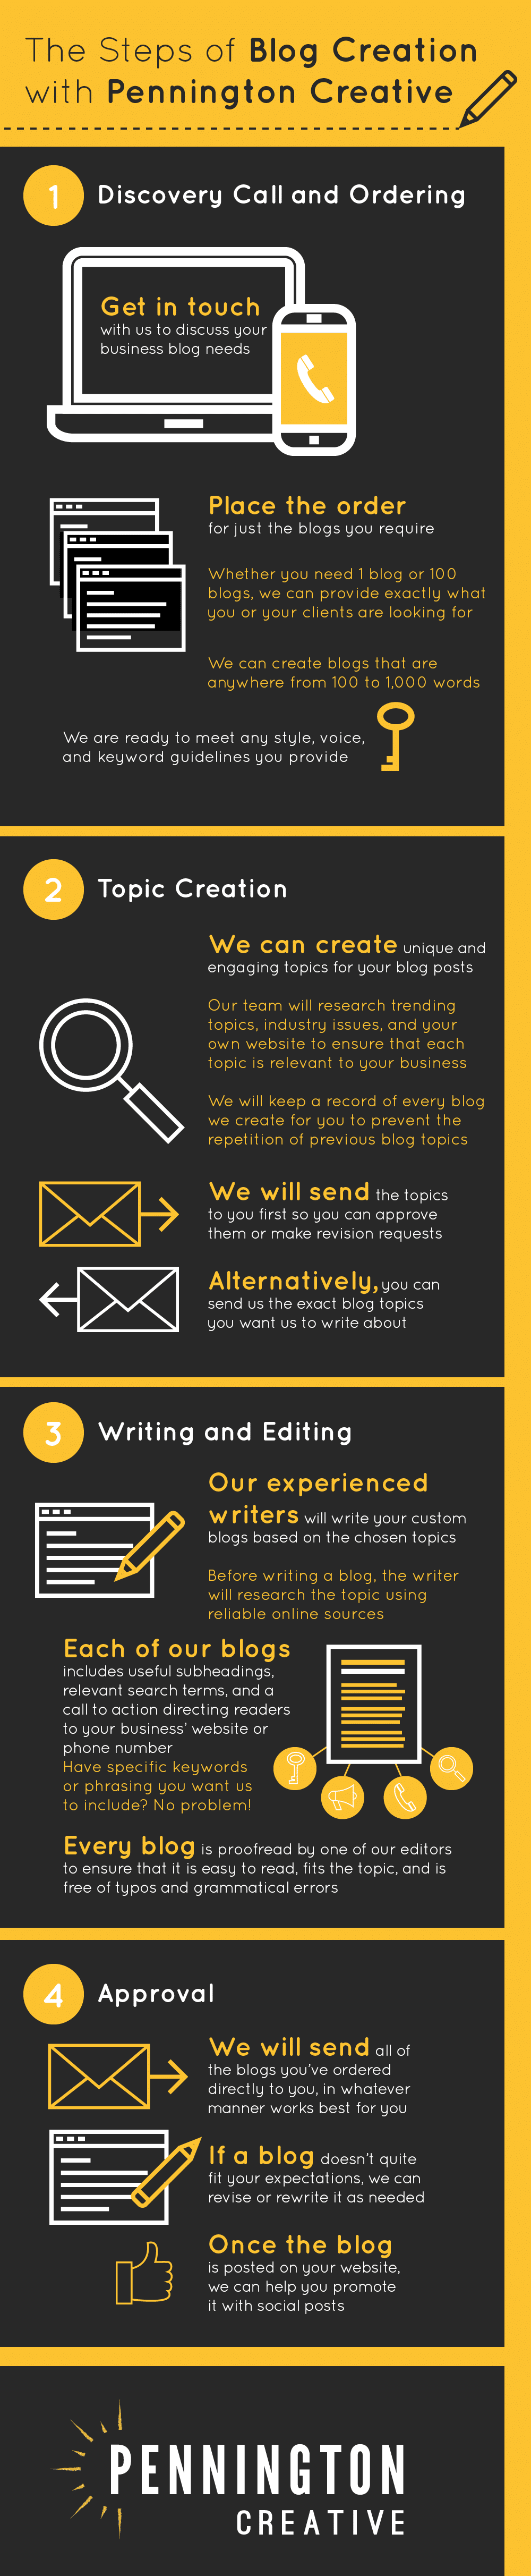 Infographic showing the steps of ordering blogs from Pennington Creative.